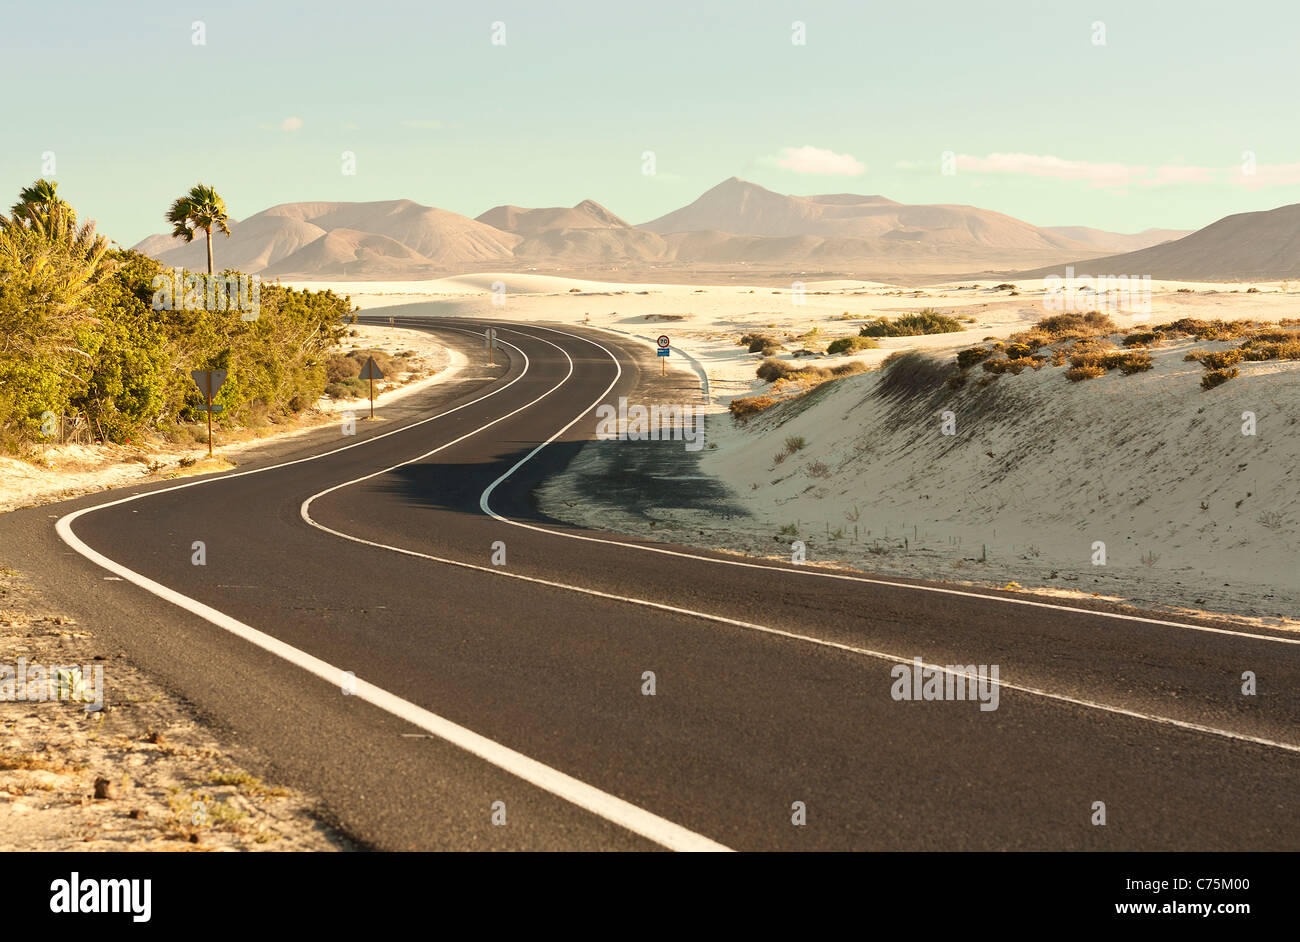 Winding Desert Road across the dunes of Corralejo, Fuerteventura Stock Photo